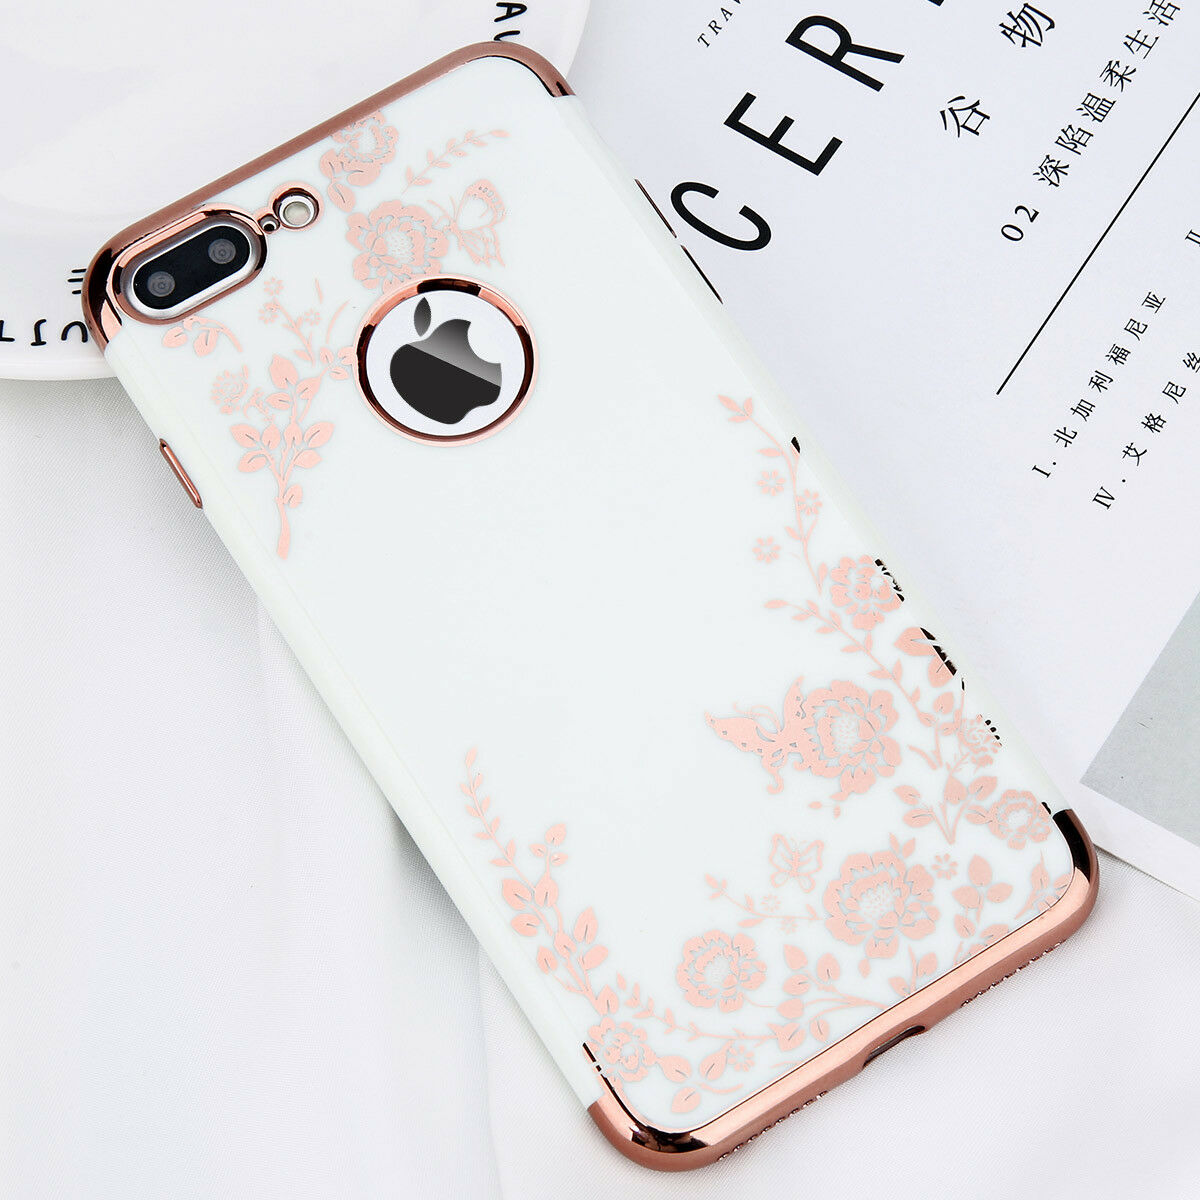 For iPhone X 6s 7 7 Plus Shockproof Plating Flower Slim Hybrid Bumper Case Cover